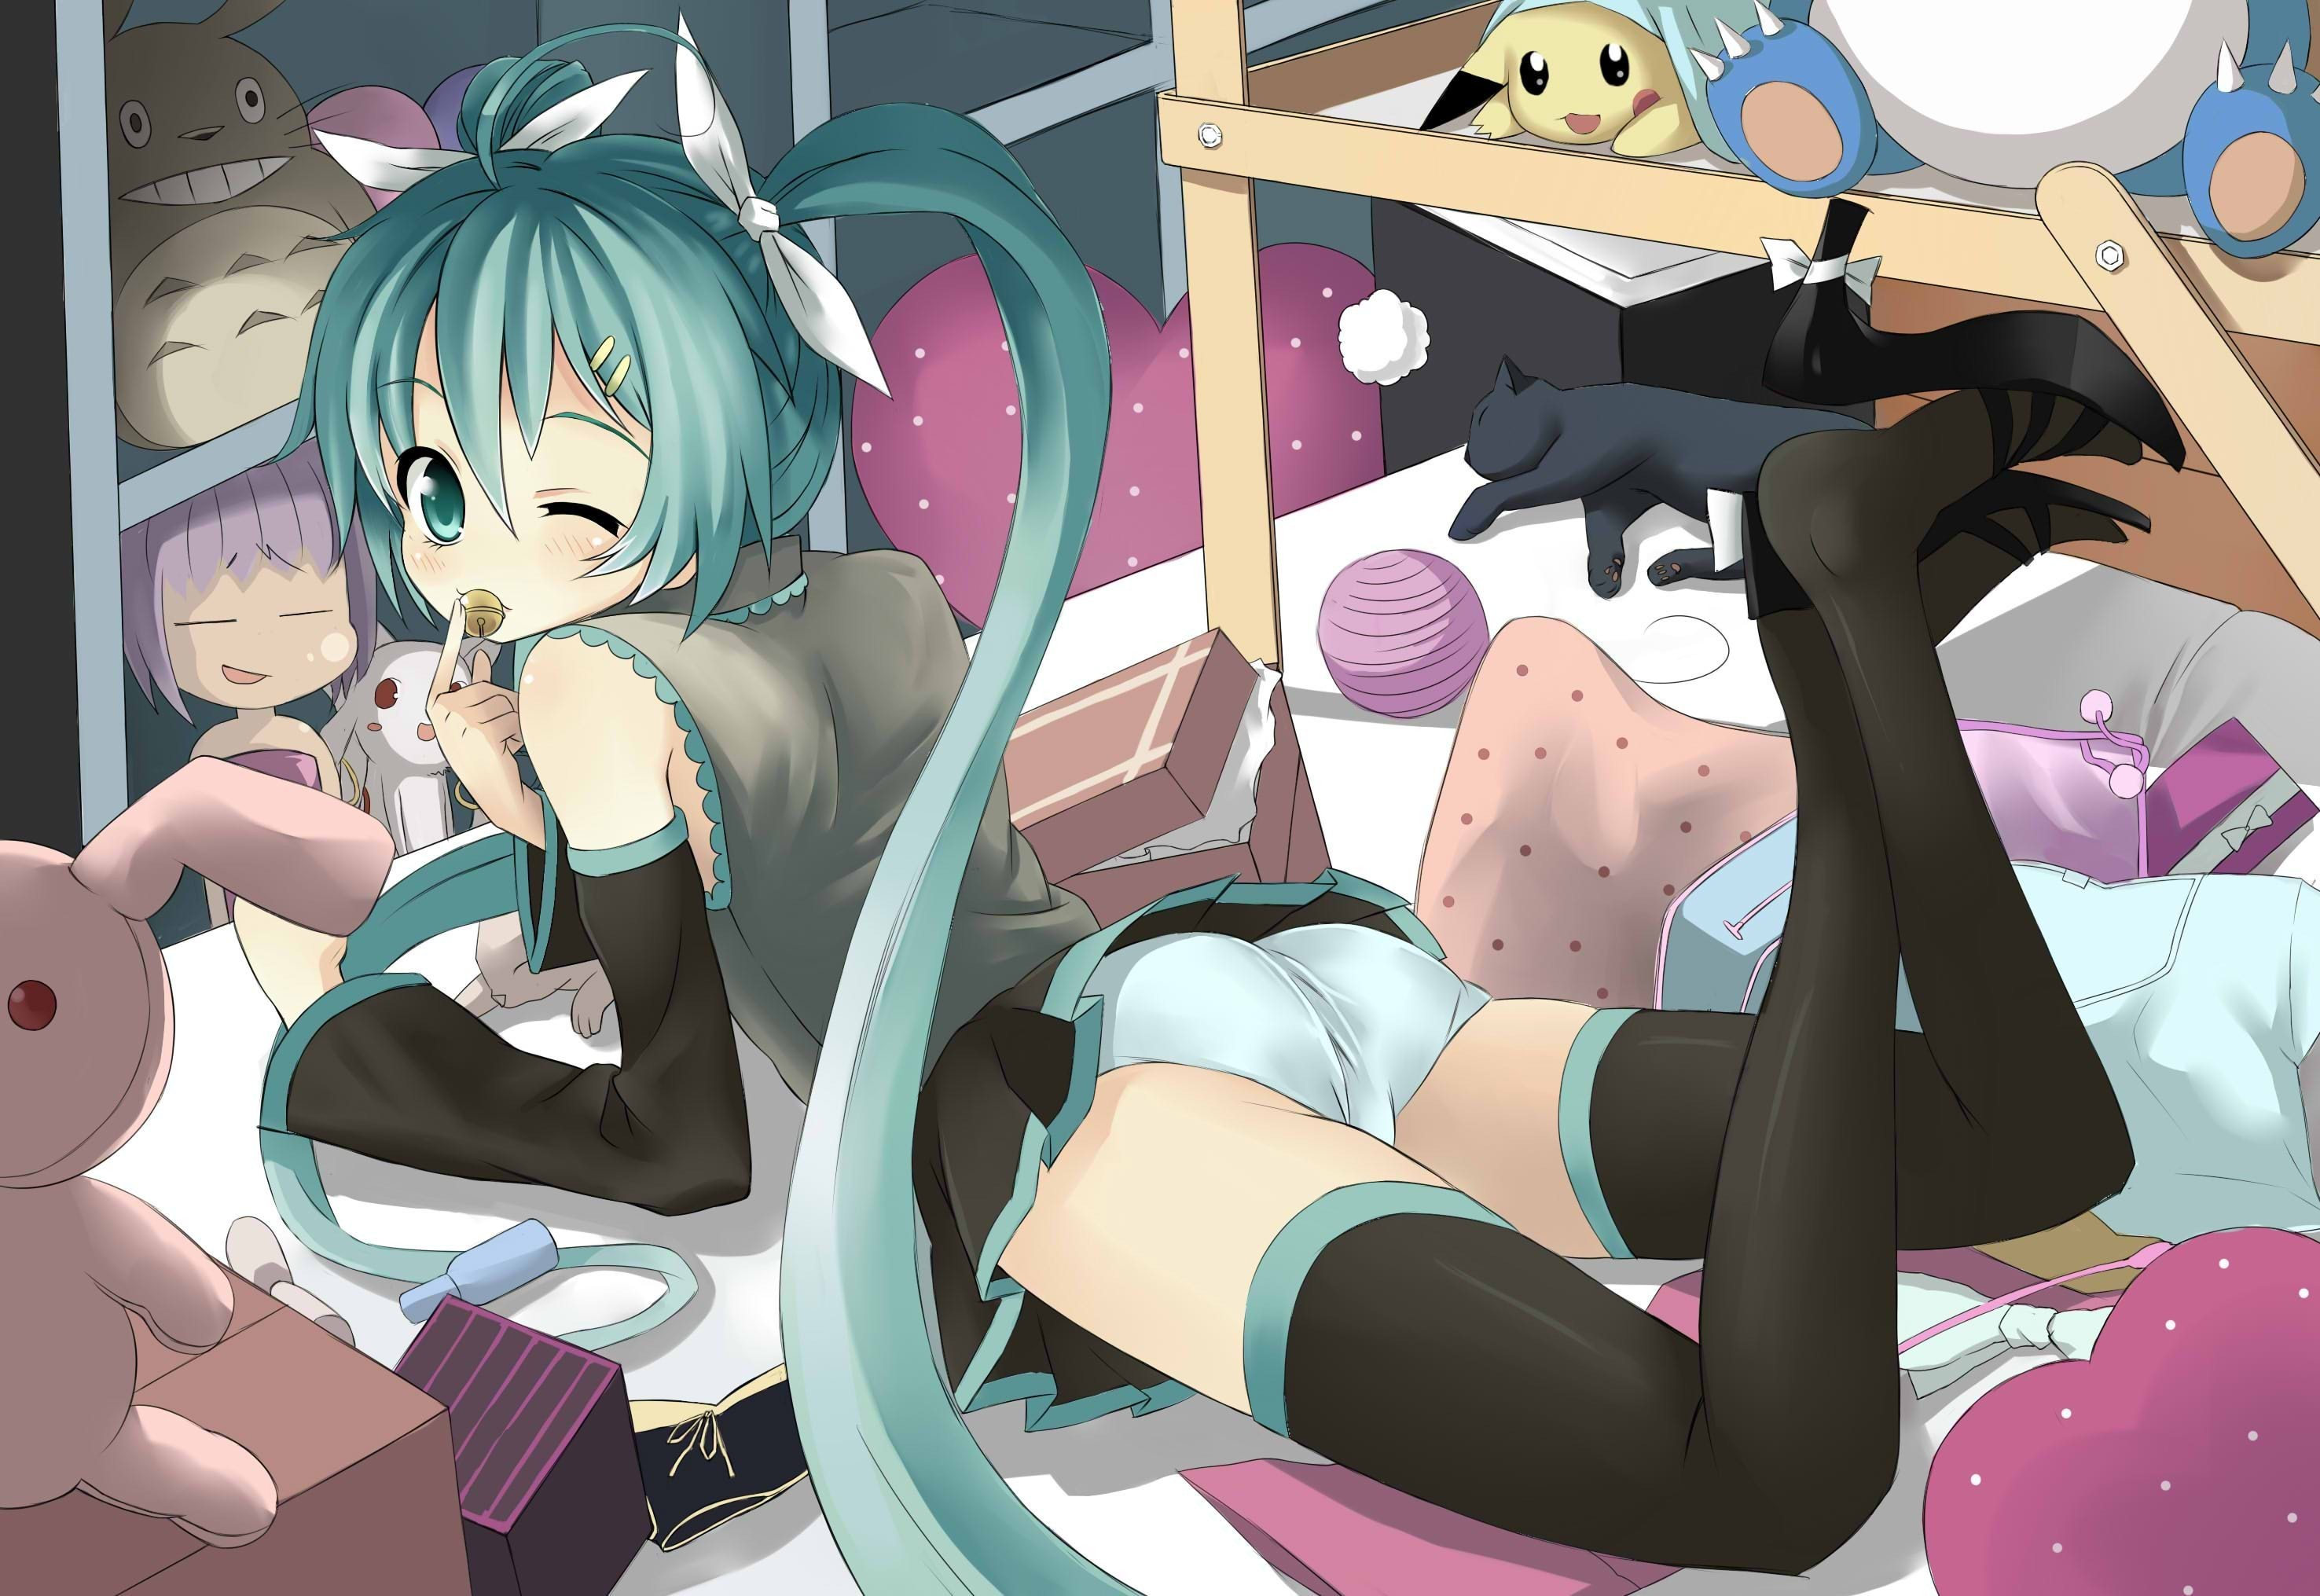 Bunnies panties vocaloid hatsune HD Wallpaper